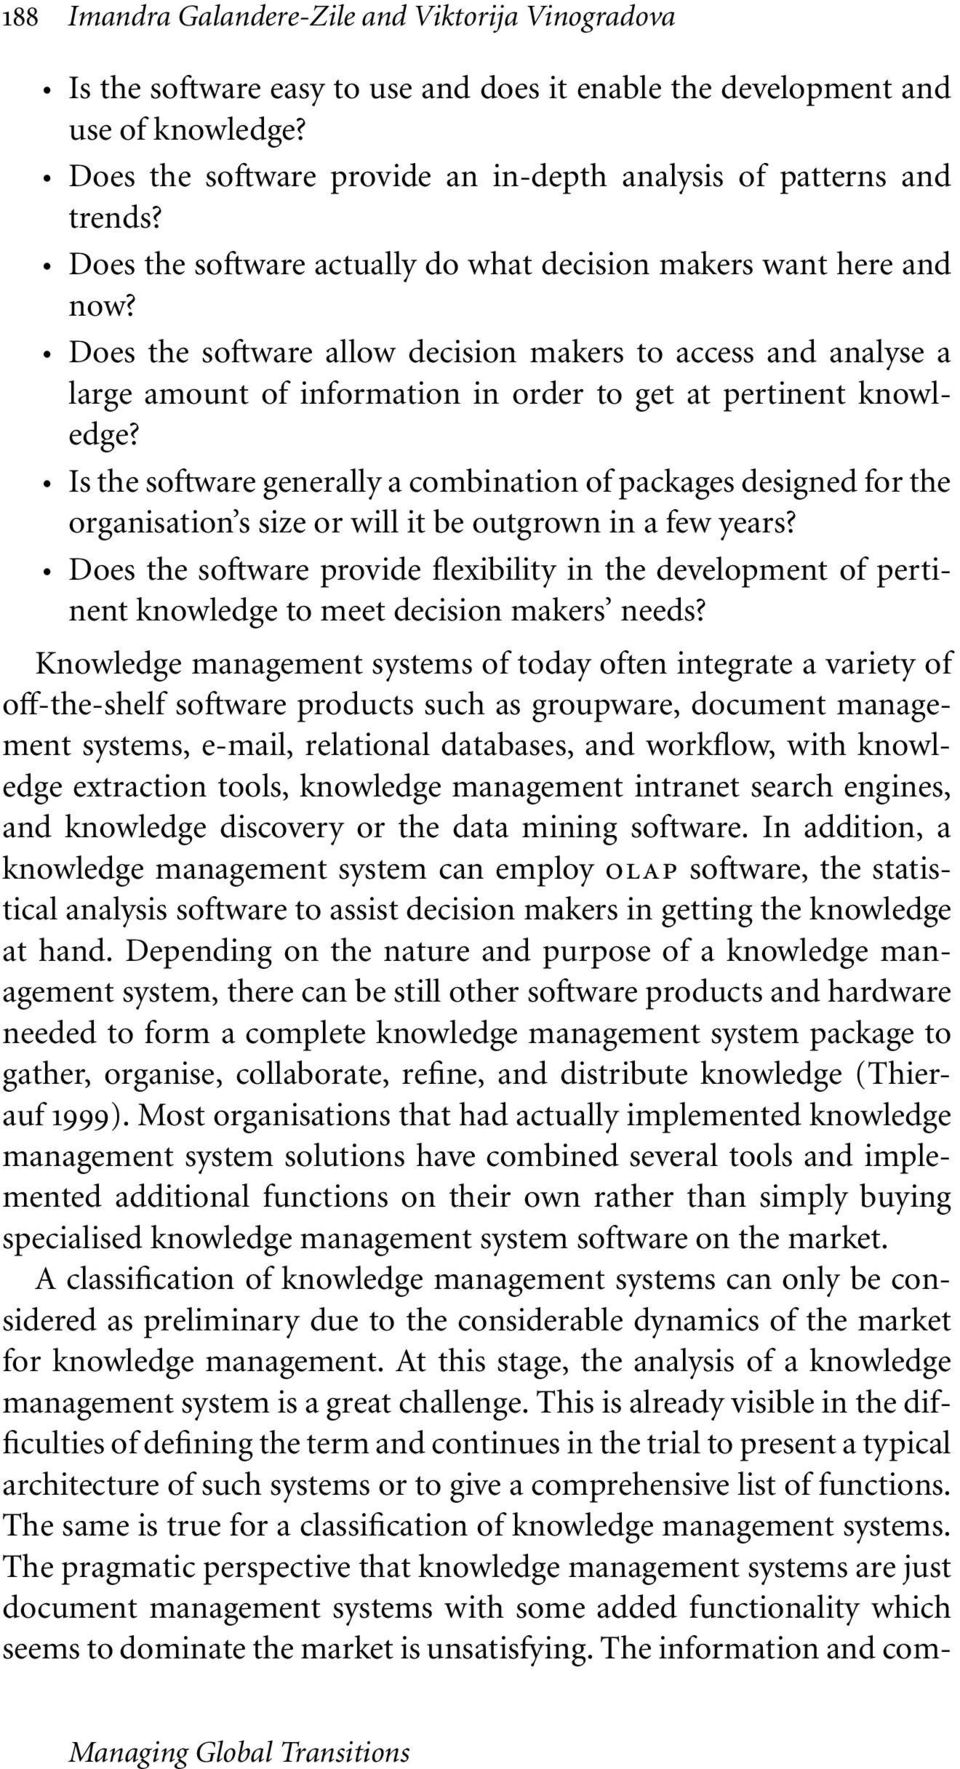 Is the software generally a combination of packages designed for the organisation s size or will it be outgrown in a few years?